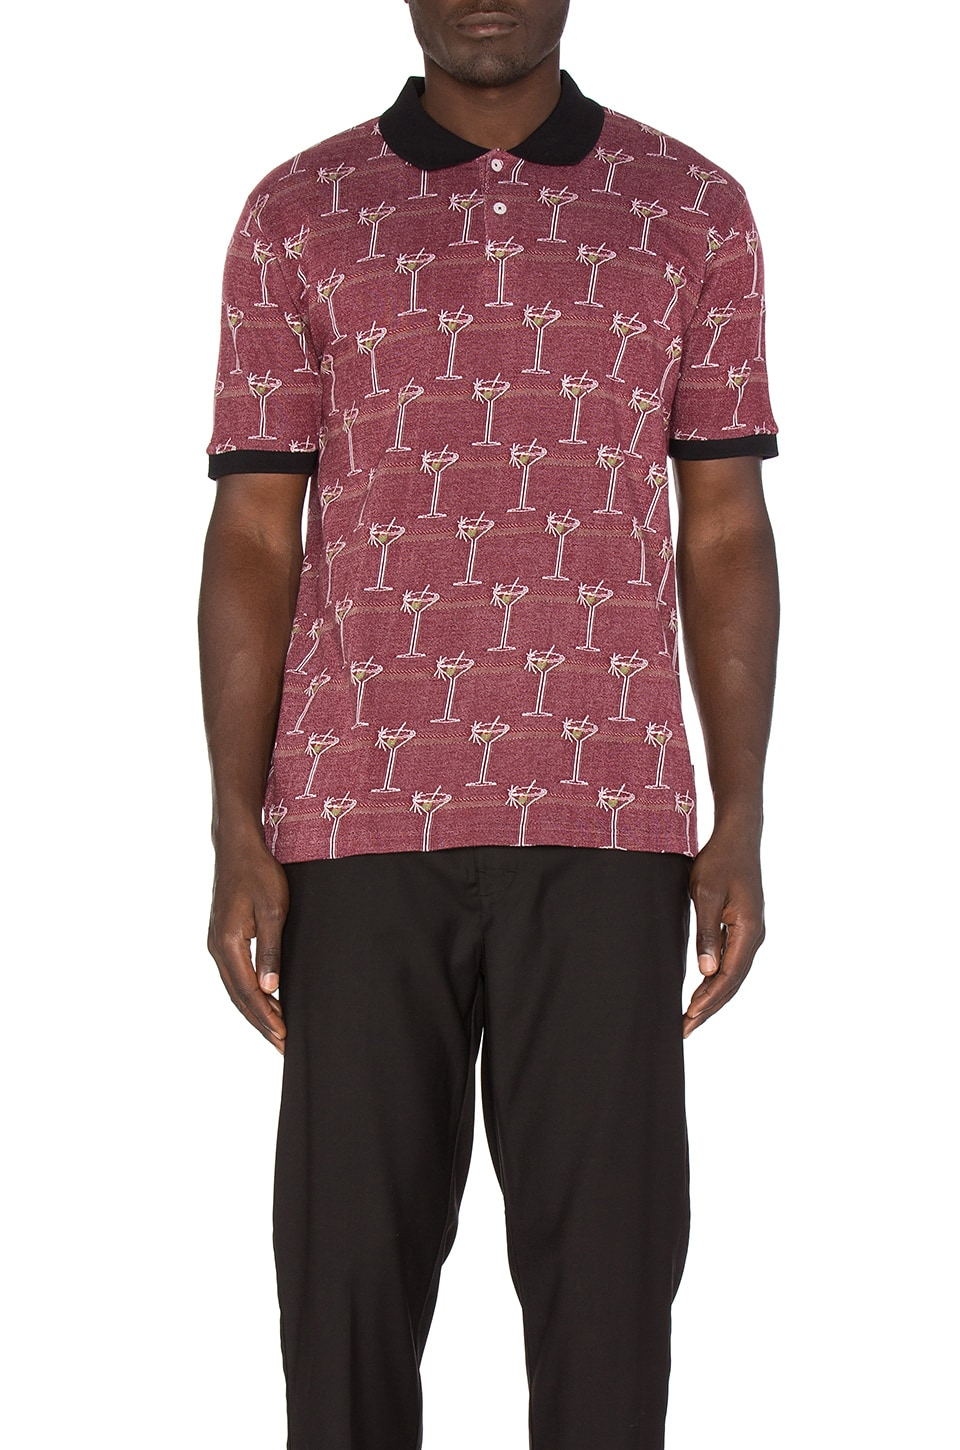 Martini Jacquard Polo by Stussy